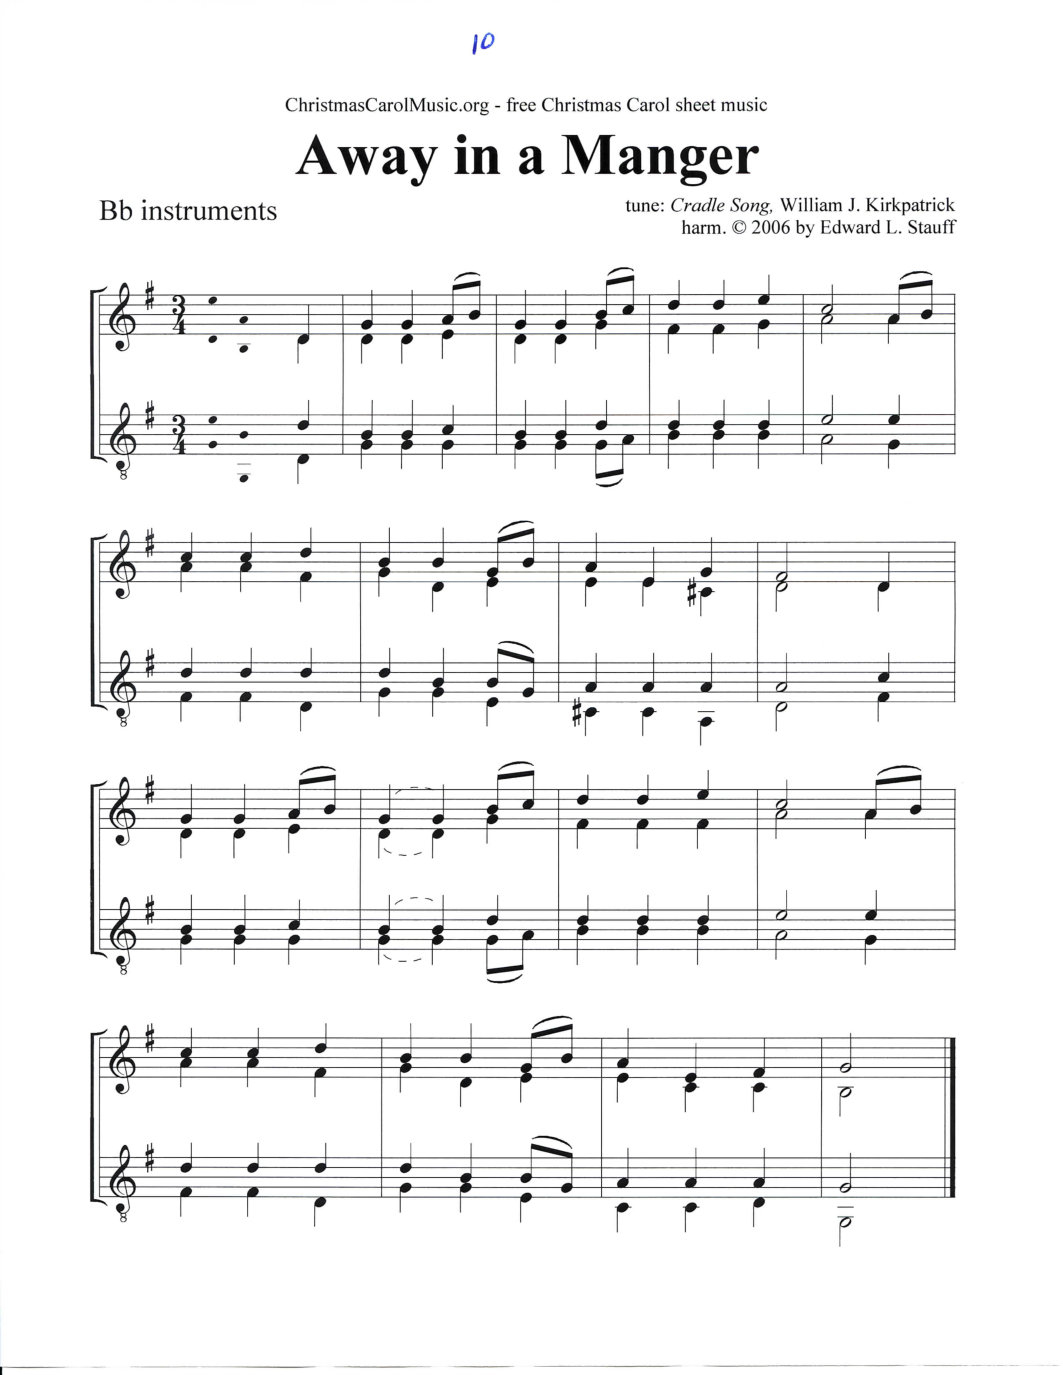 A Christmas Eve Songbook